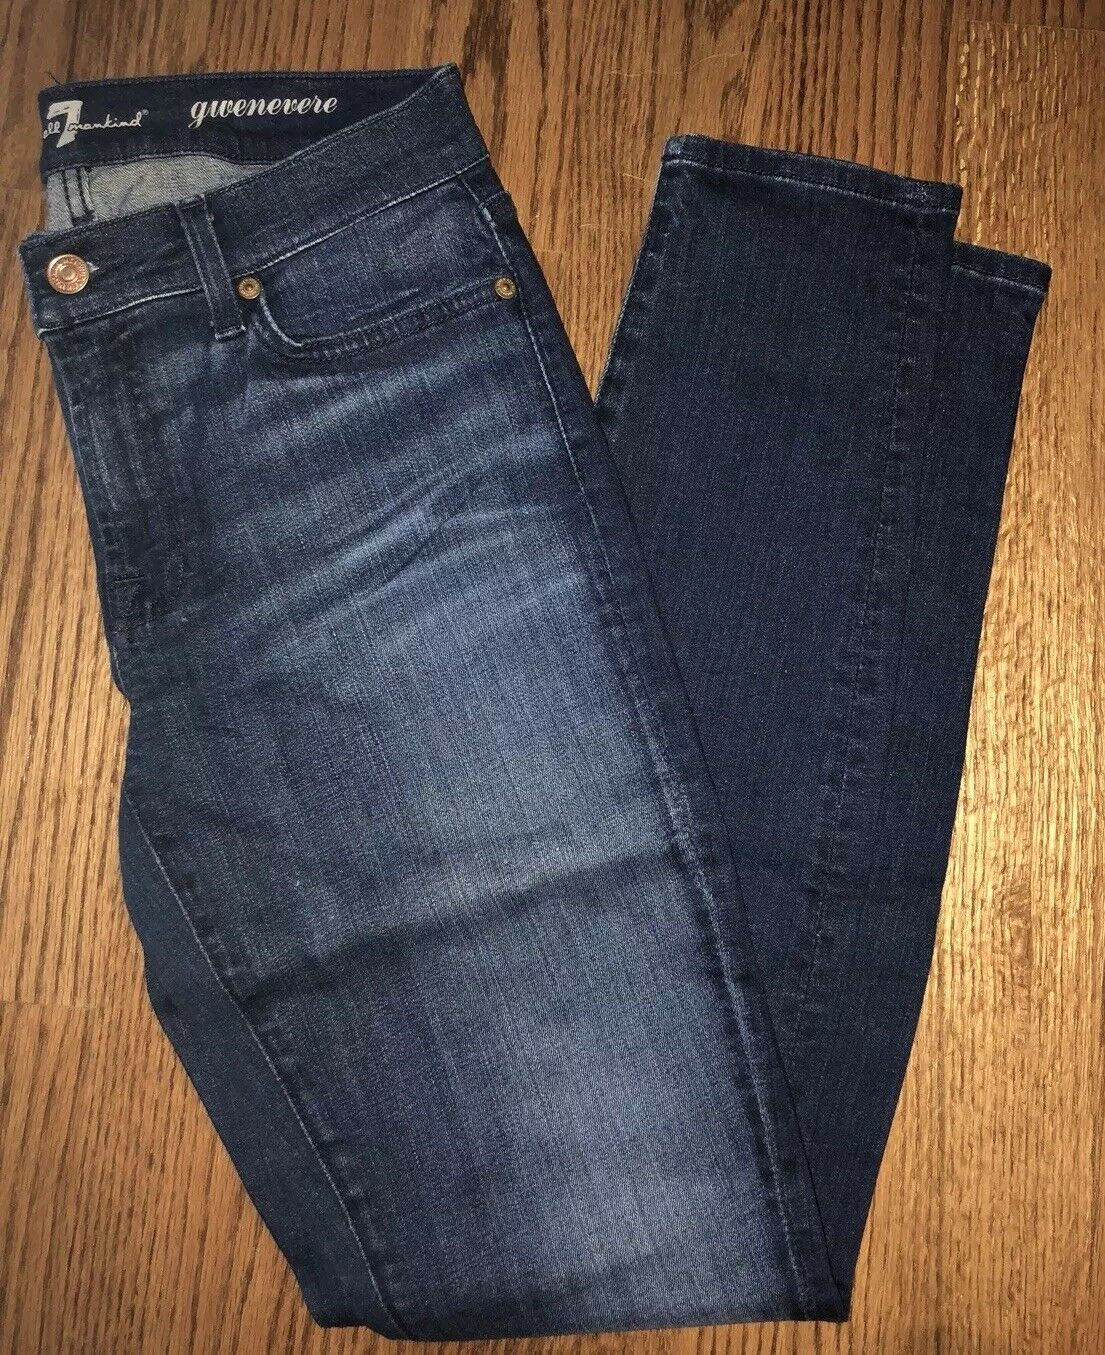 7 for mankind jeans, gwenerve skinny jeans,  Size 27